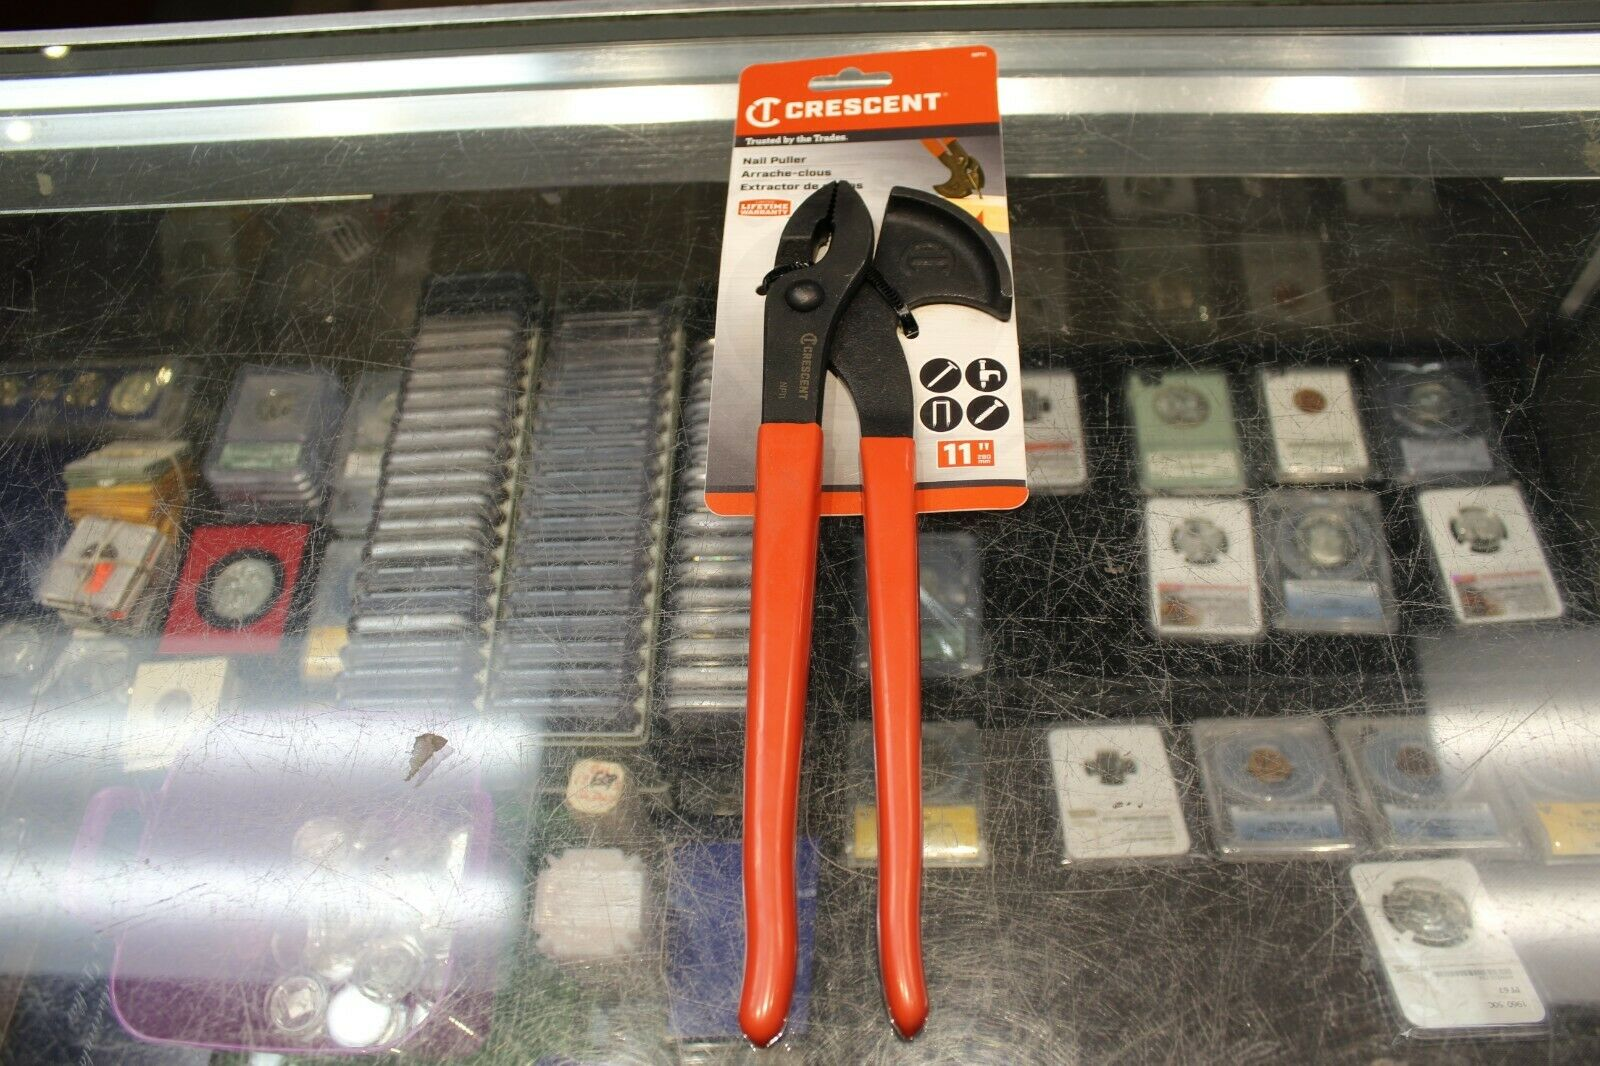 Crescent Tongue And Groove Pliers